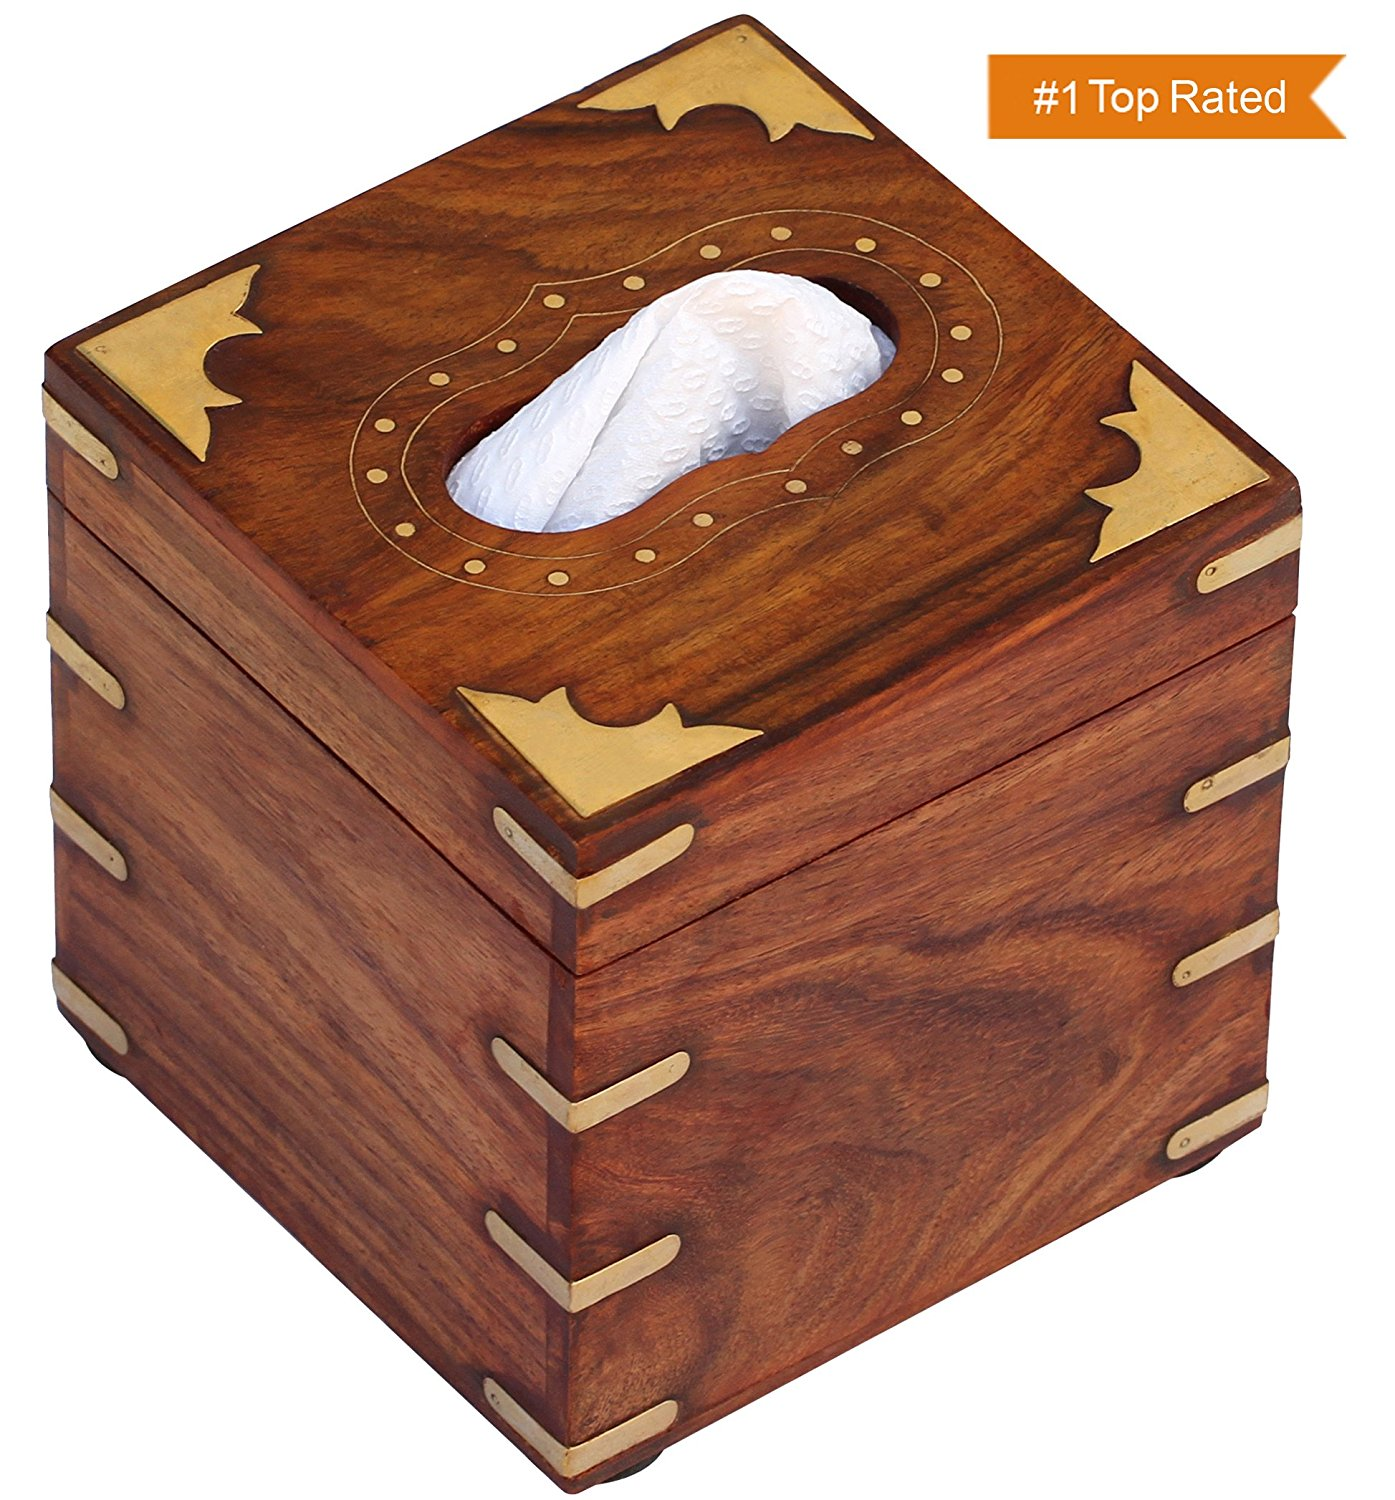 Souvnear 10 Inch Brown Tissue Box Cover Wooden Holder